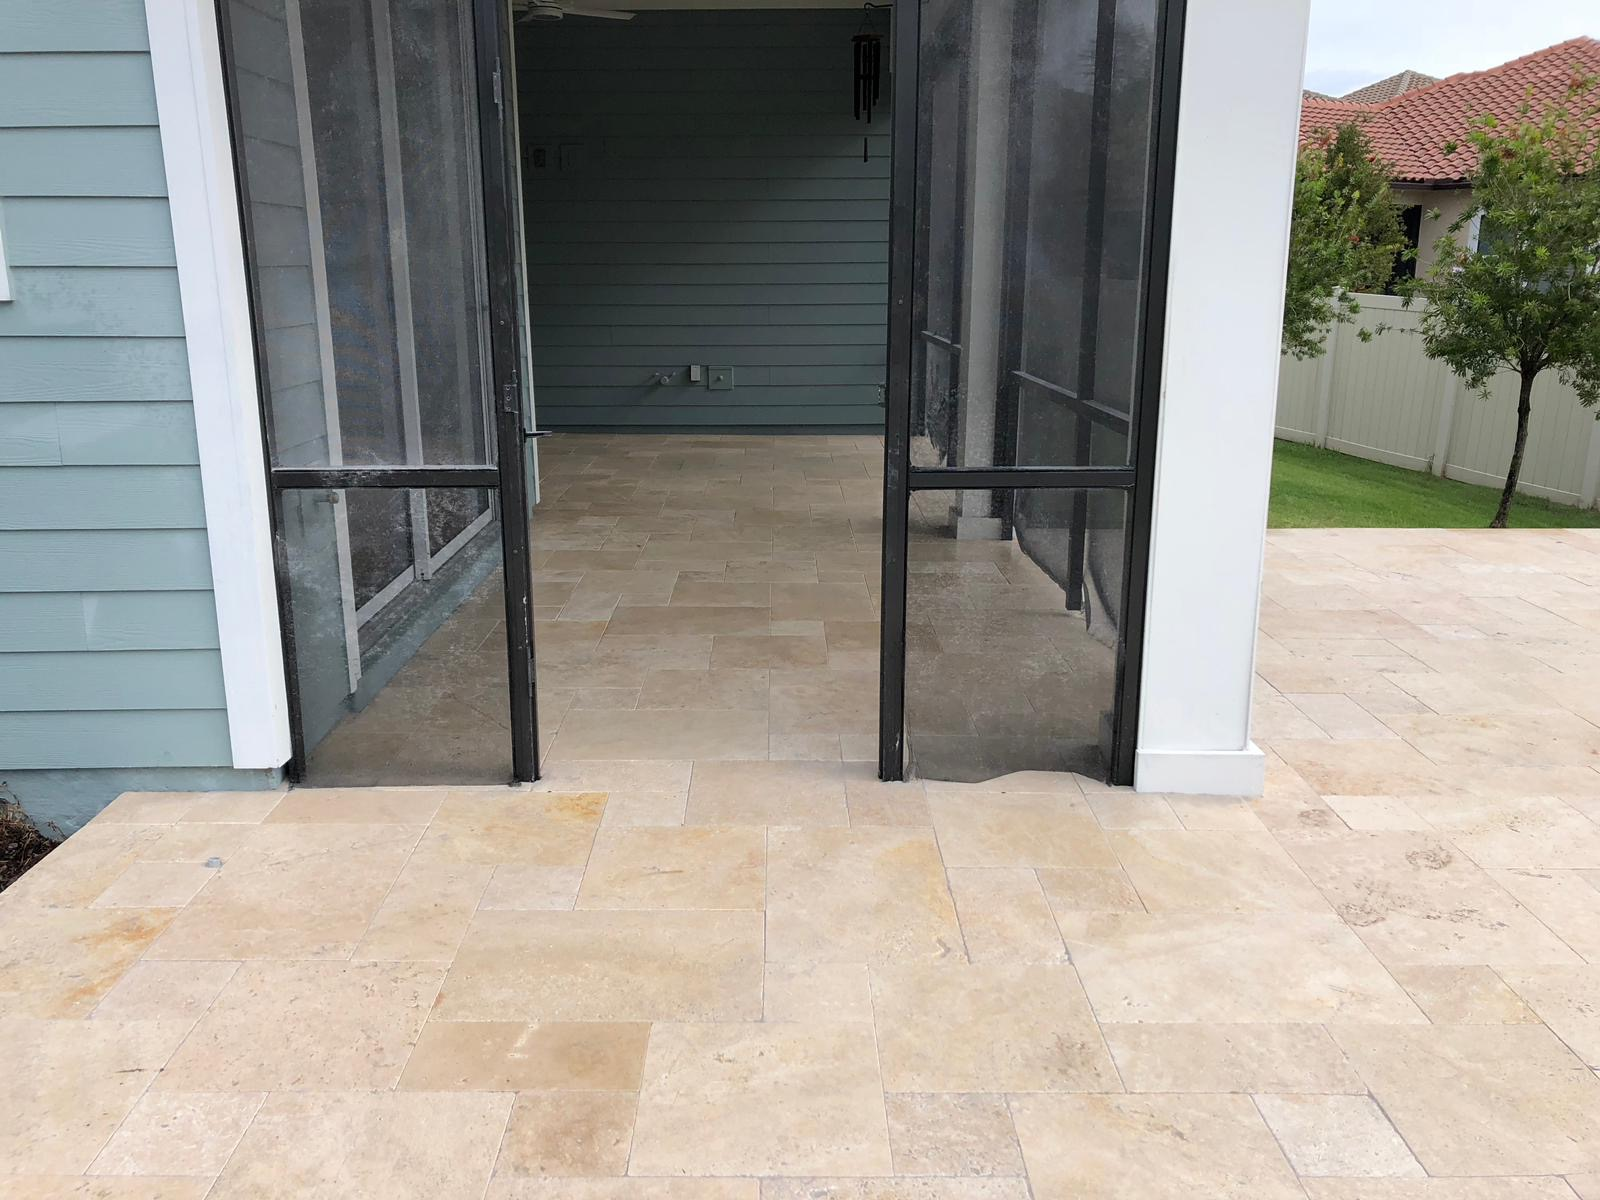 travertine-paver-french